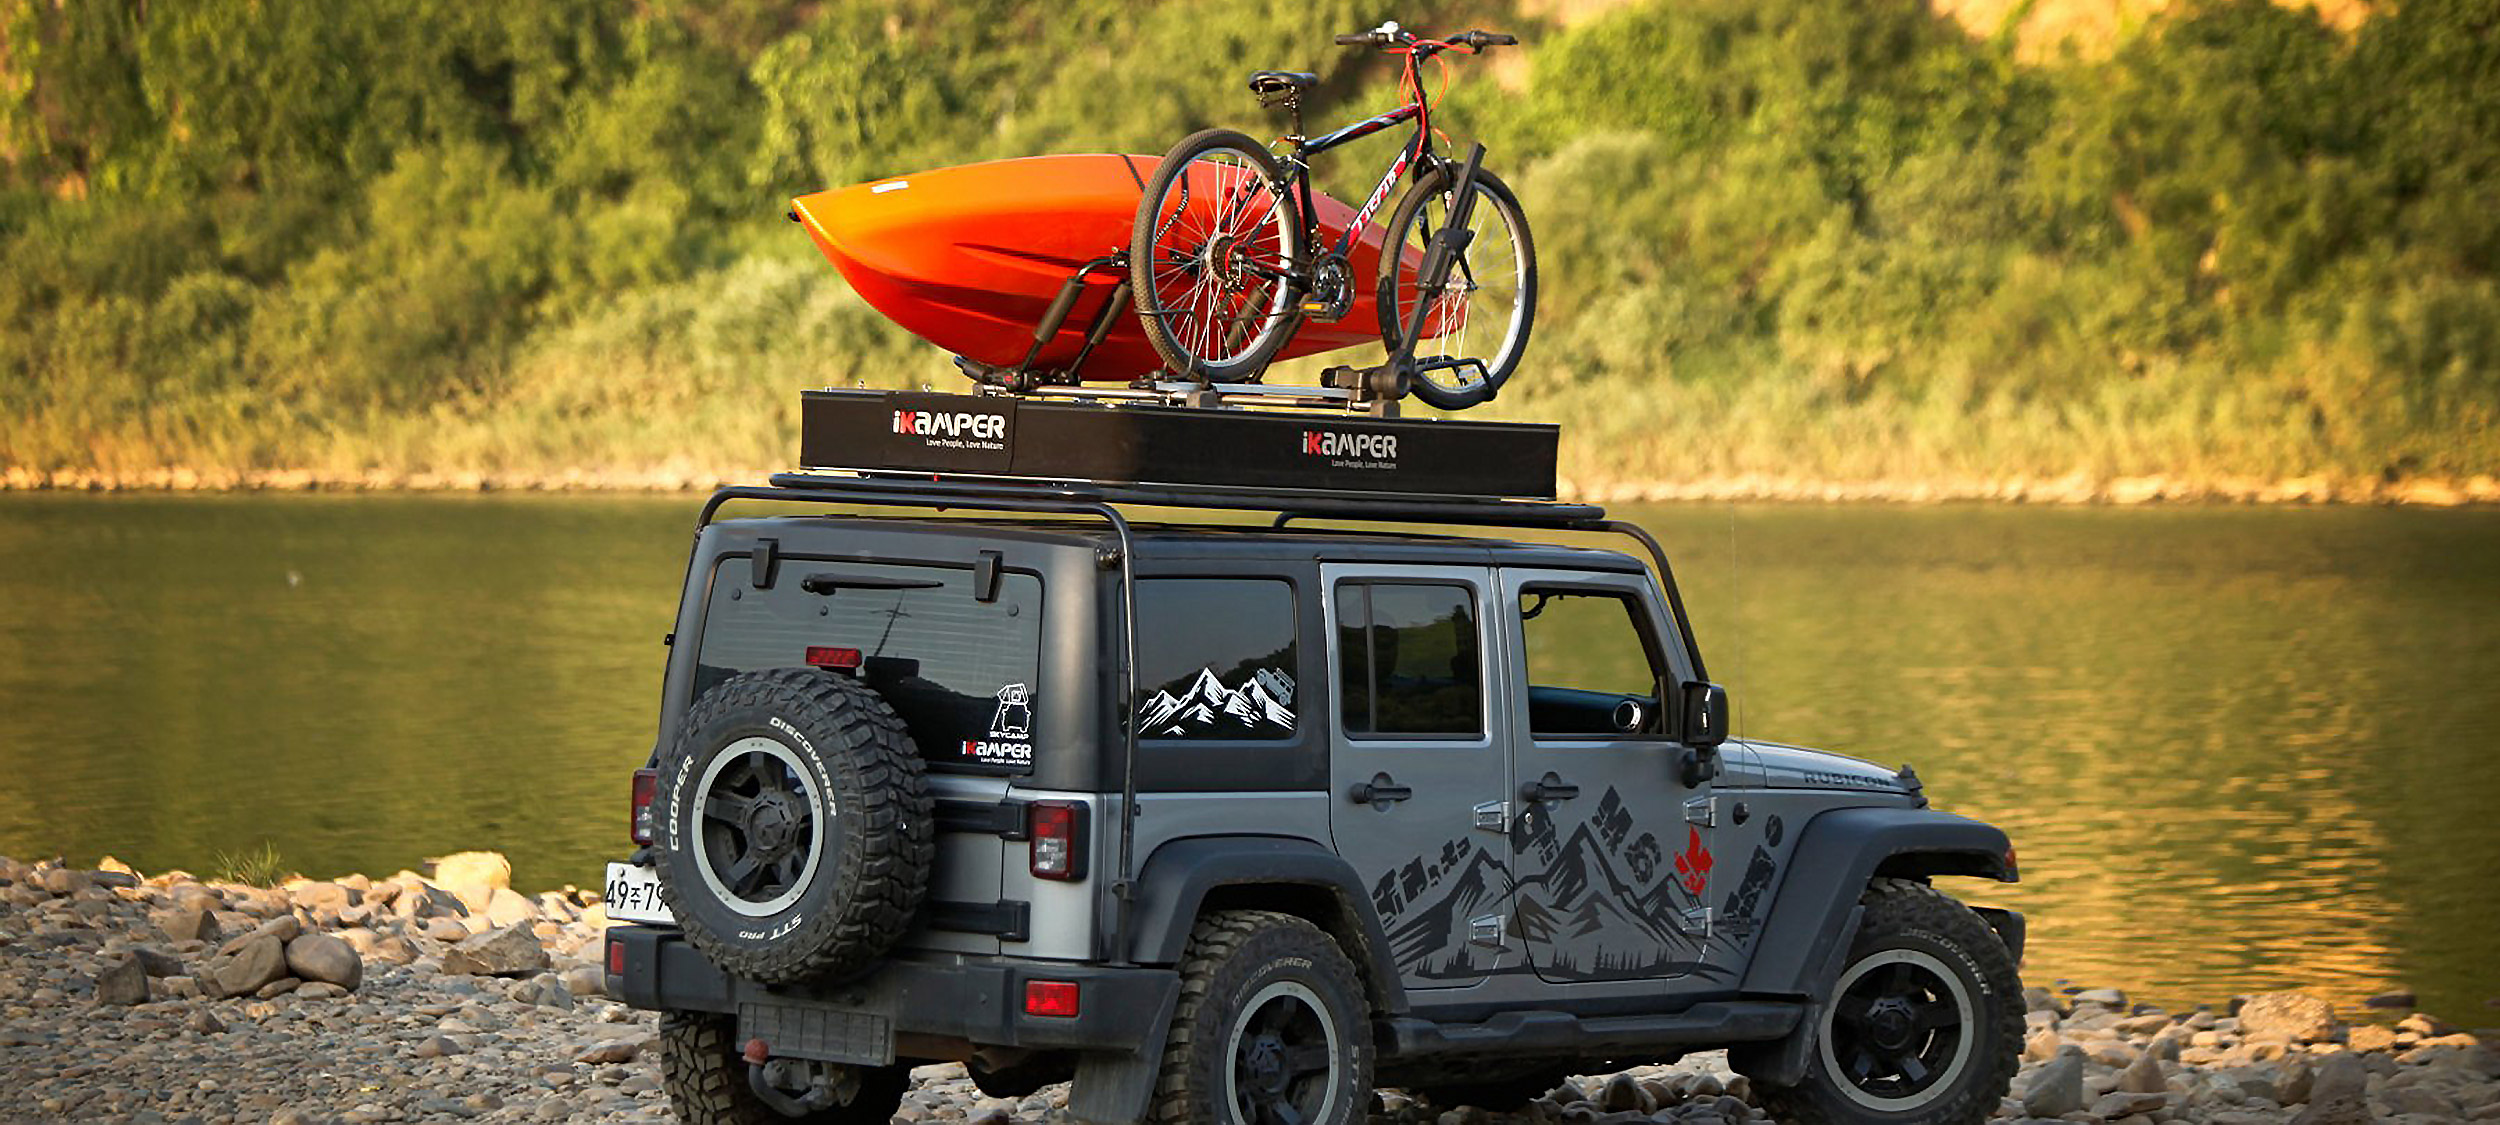 Ikamper Australia X Cover Roof Top Tent